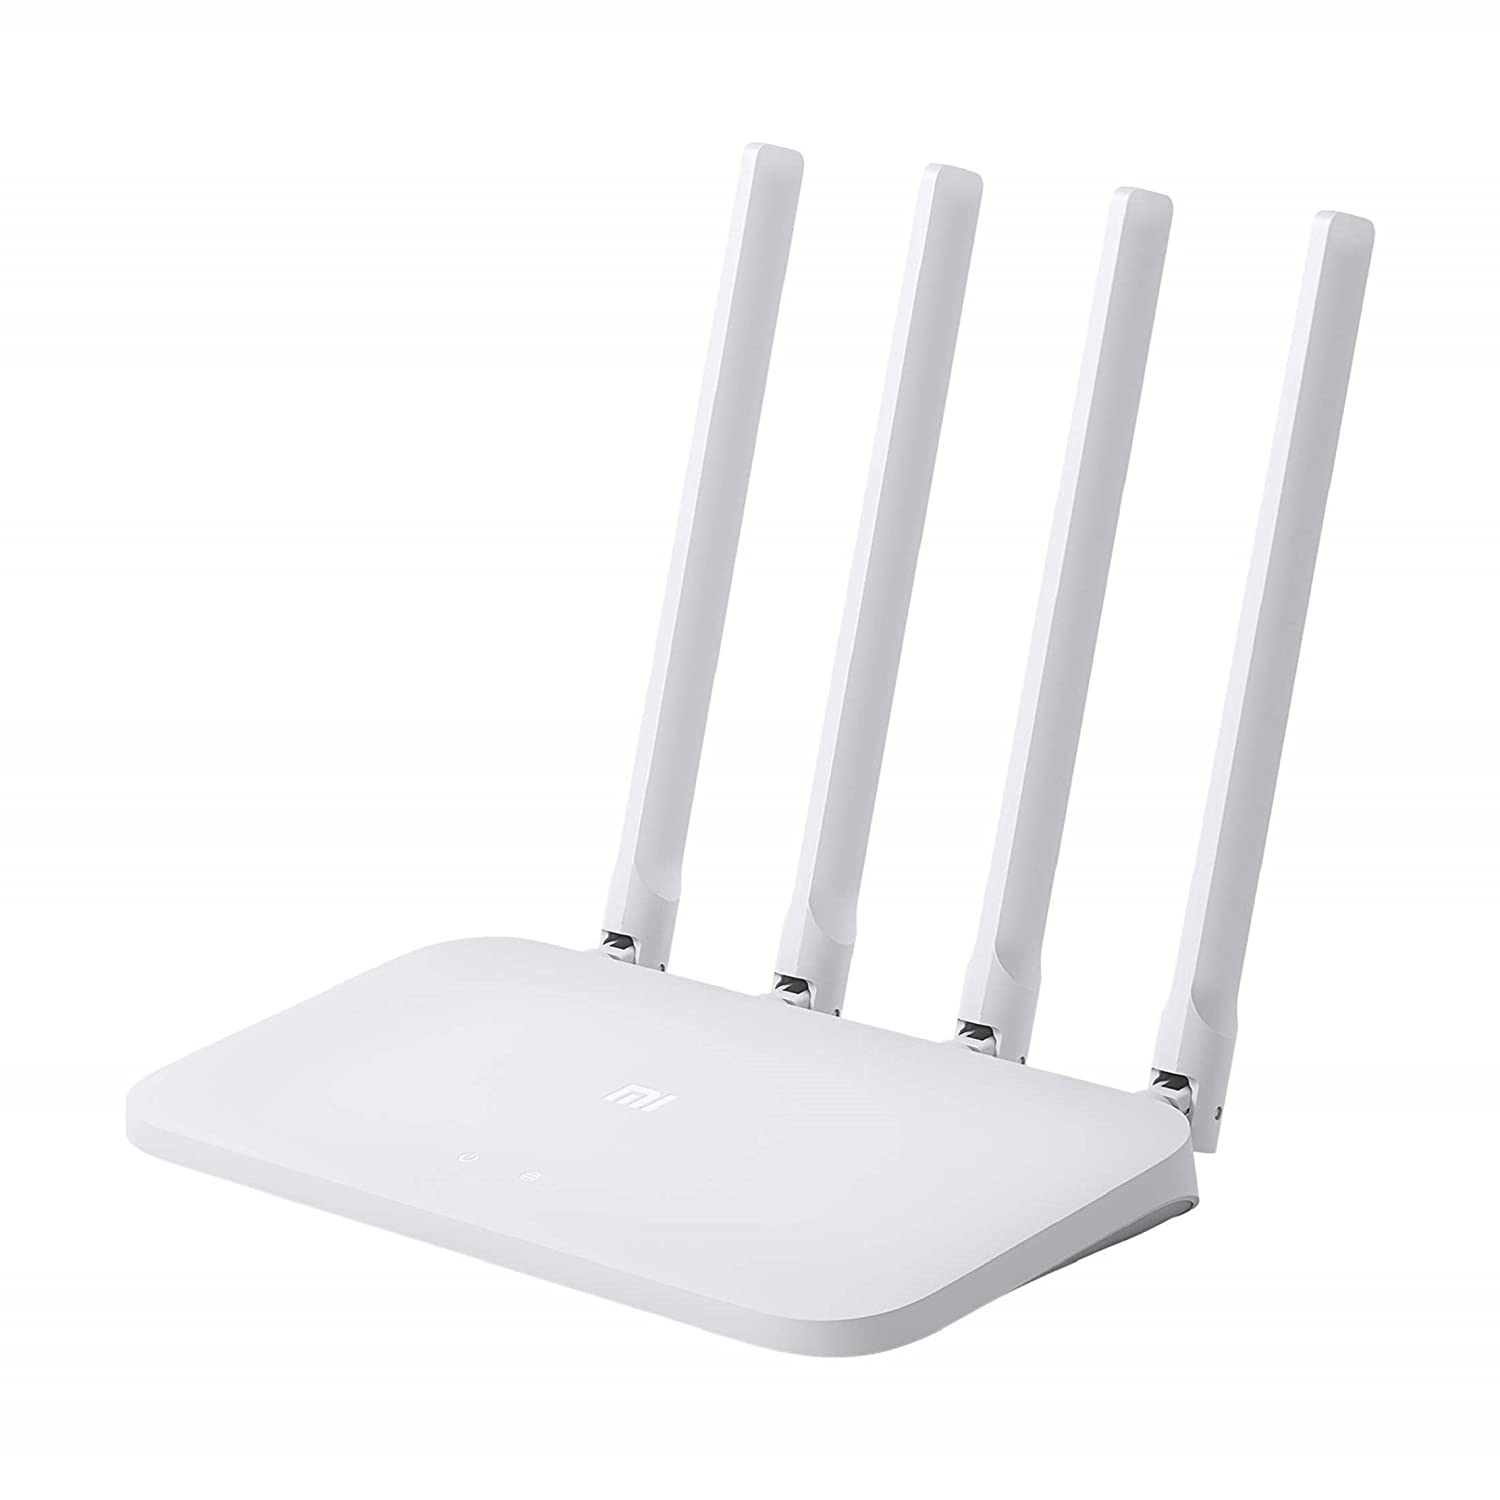 Mi Smart Router 4C, 300 Mbps with 4 high-Performance Antenna & App Control